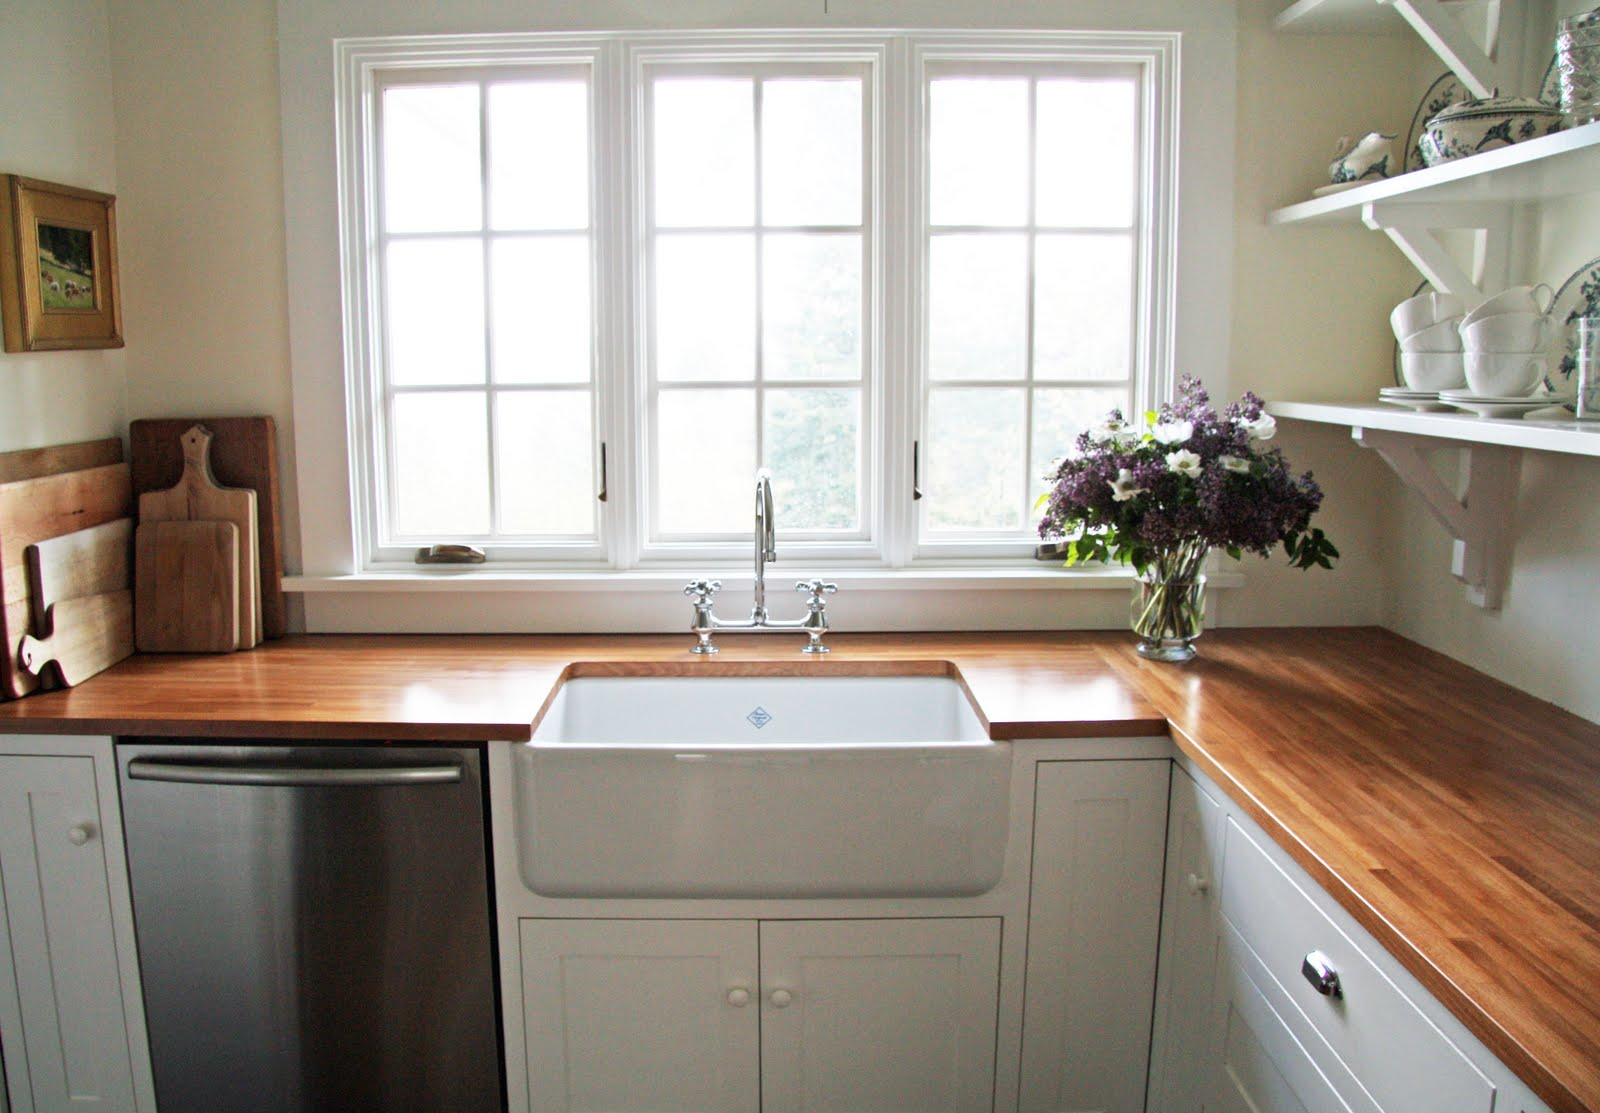 Butcher Block Countertops Care Butcher Block Countertops Great Option For Any Kitchen